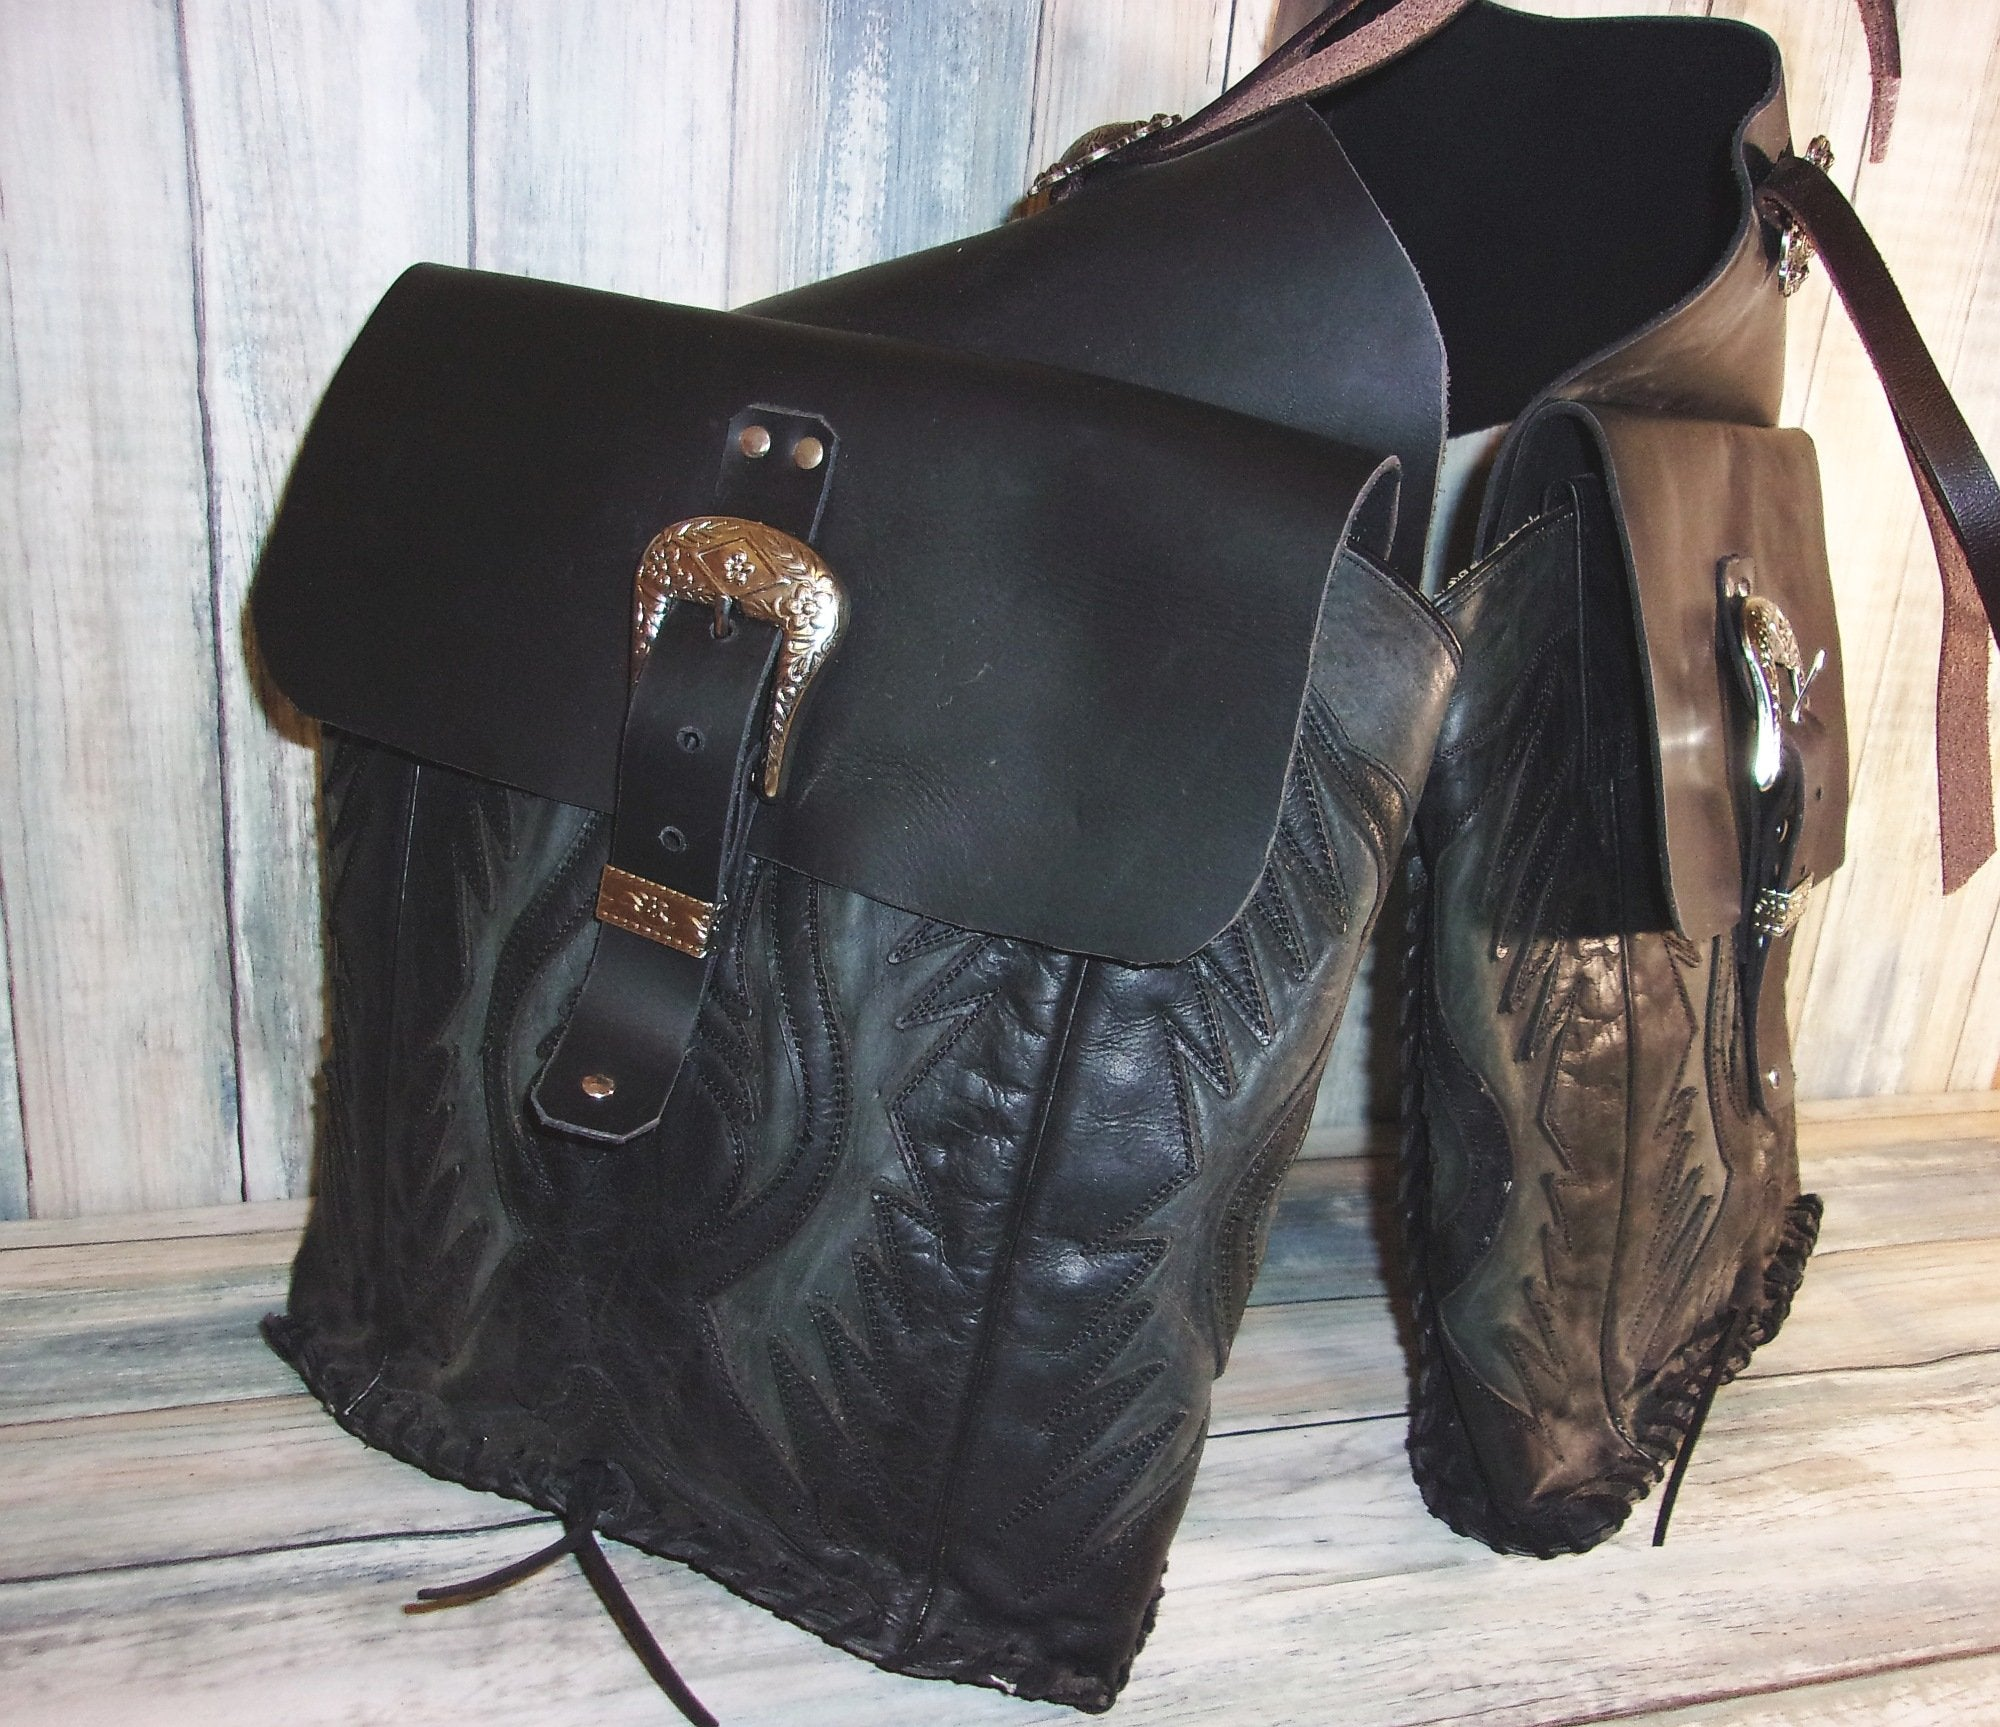 Equine Saddle-Bags - Riding Saddle Bags - Handcrafted Saddlebags cowboy boot purses, western fringe purse, handmade leather purses, boot purse, handmade western purse, custom leather handbags Chris Thompson Bags